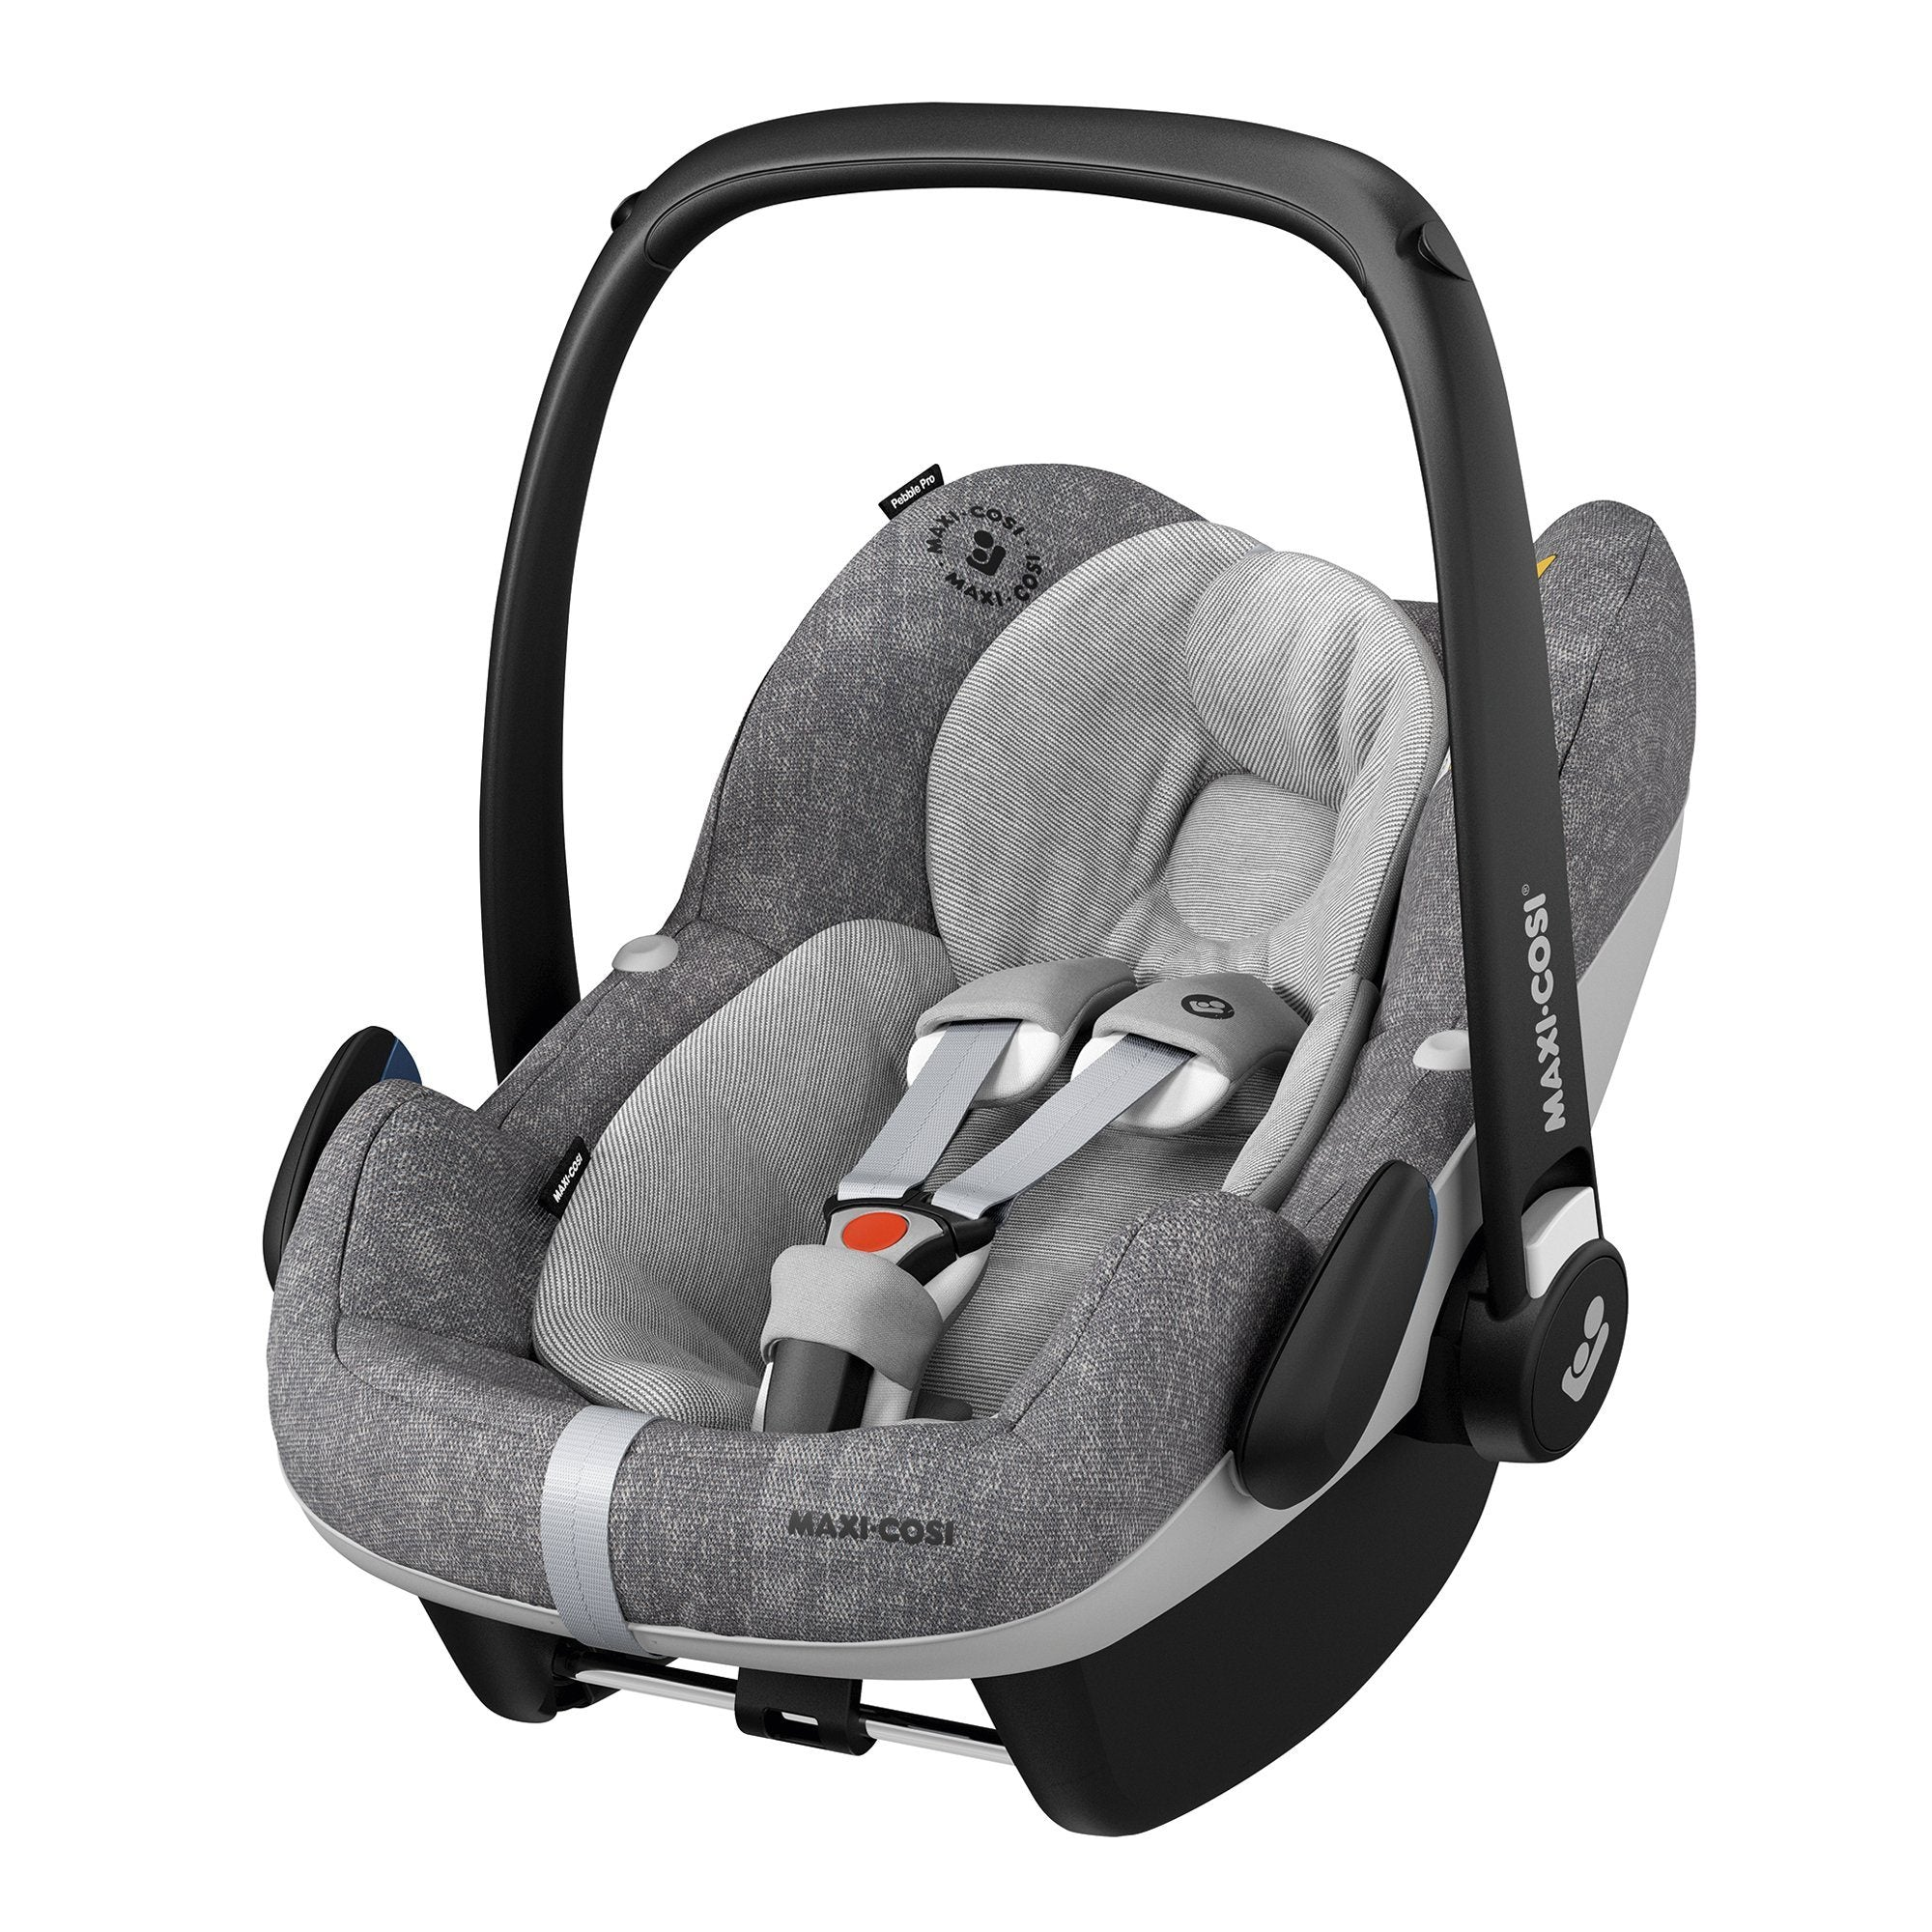 Maxi-Cosi Pebble Pro i-Size infant car seat - Nomad Grey - Pushchair Expert